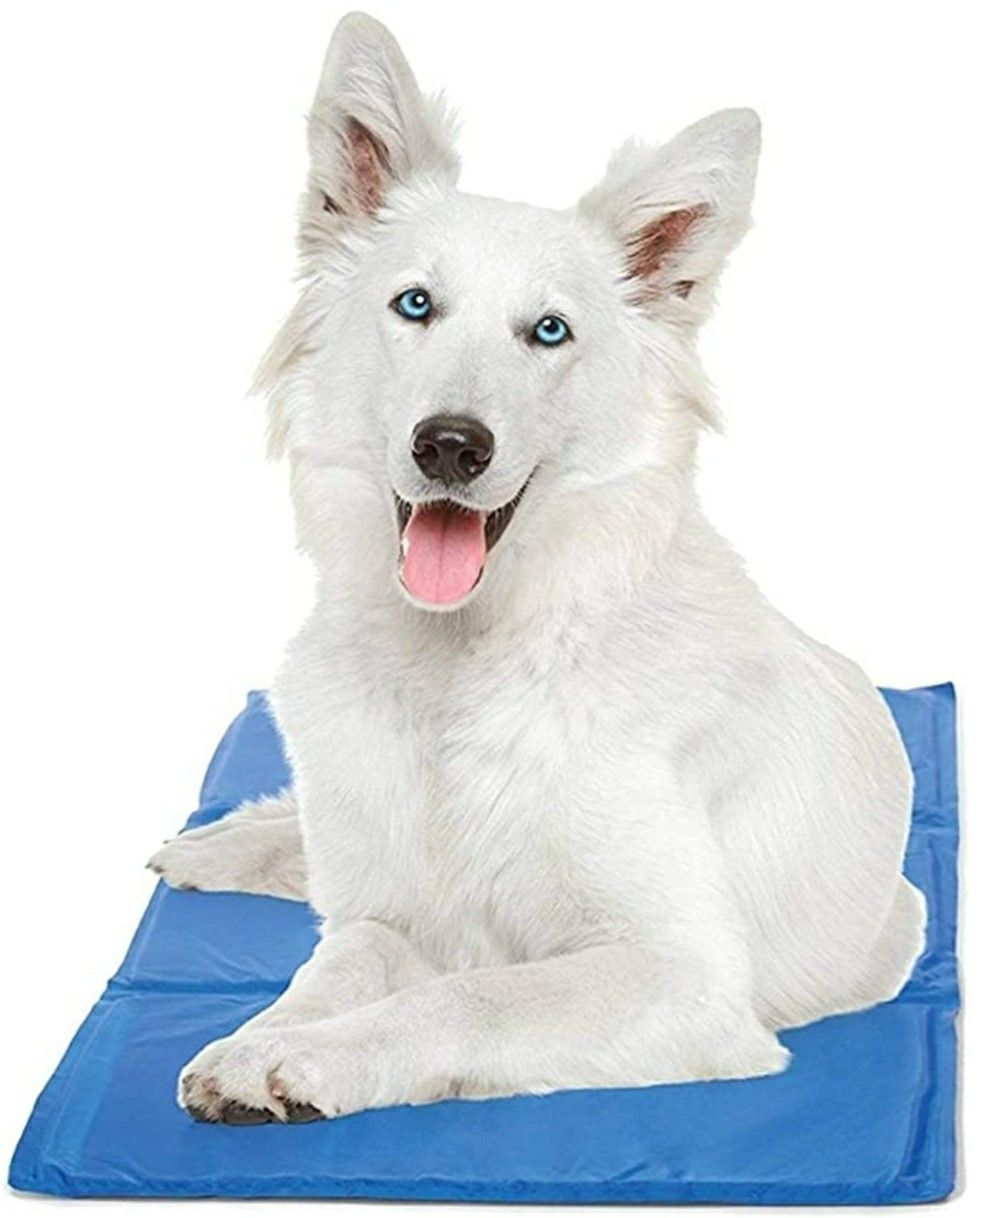 Pin On Brain Training For Dogs